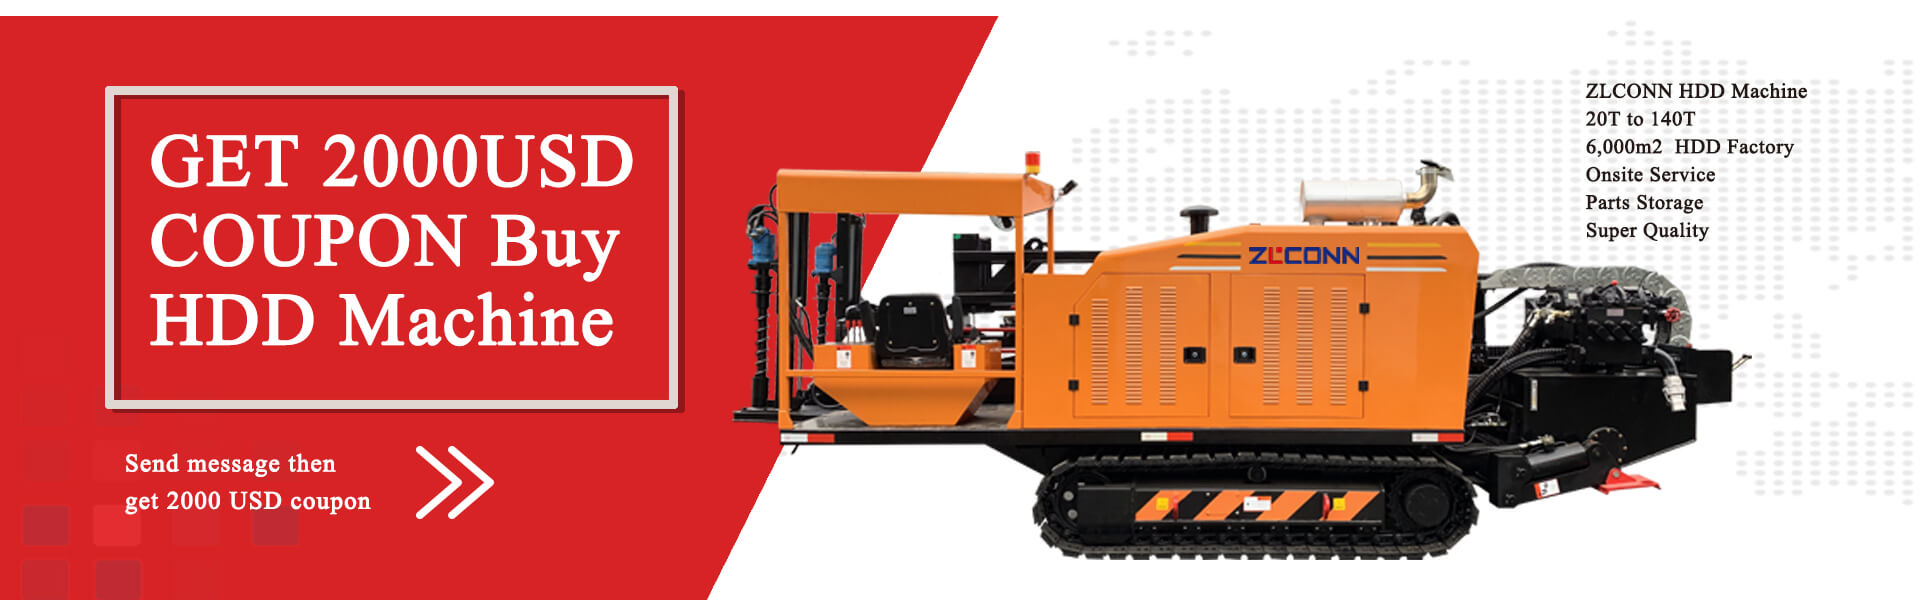 ZLCONN HORIZONTAL DIRECTIONAL DRILLING MACHINE BIG SALE NOW